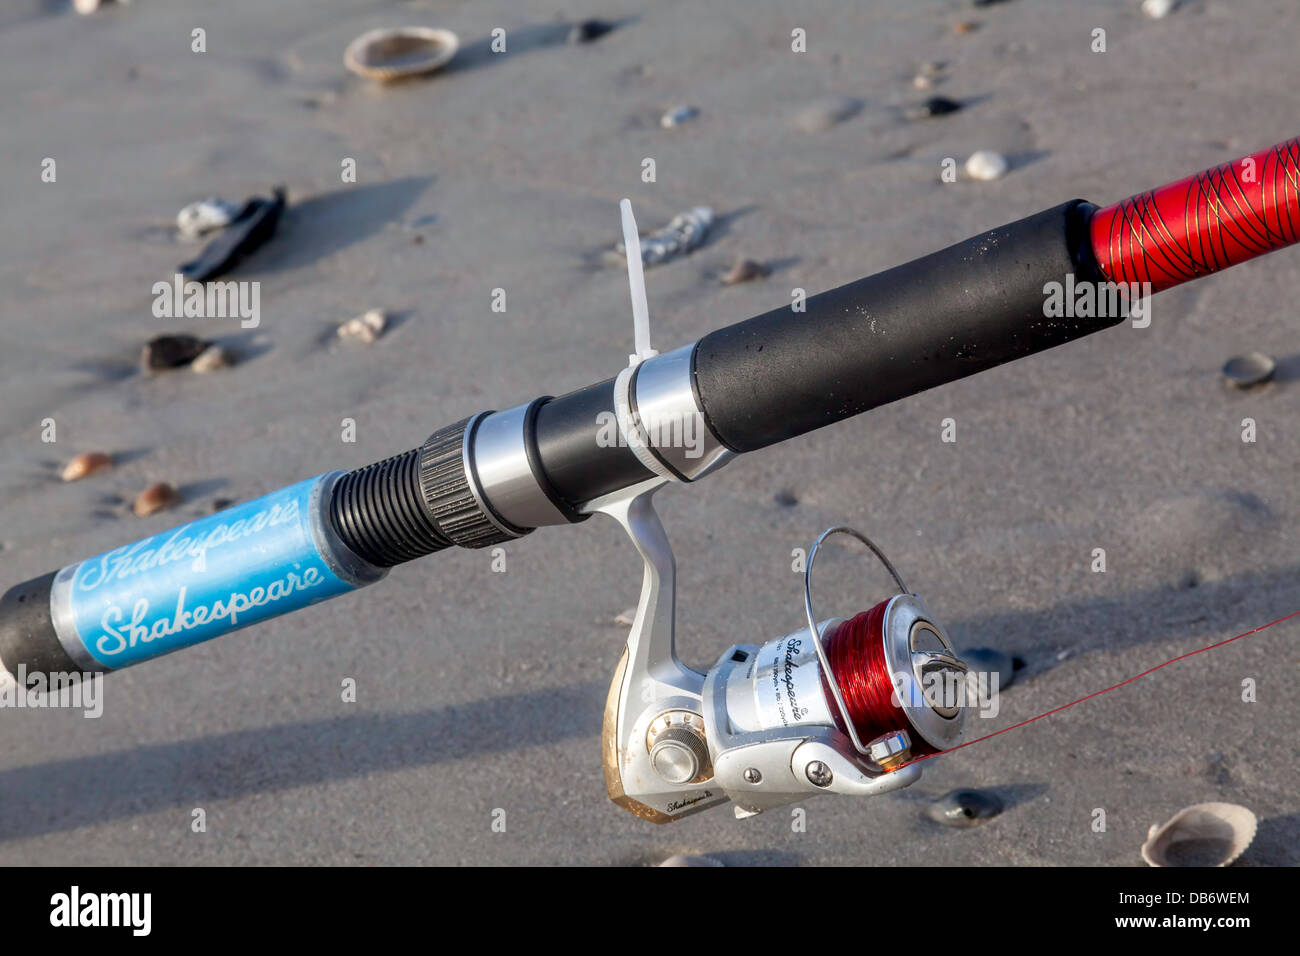 Shakespeare fishing rod and reel resting on sandy beach. - Stock Image